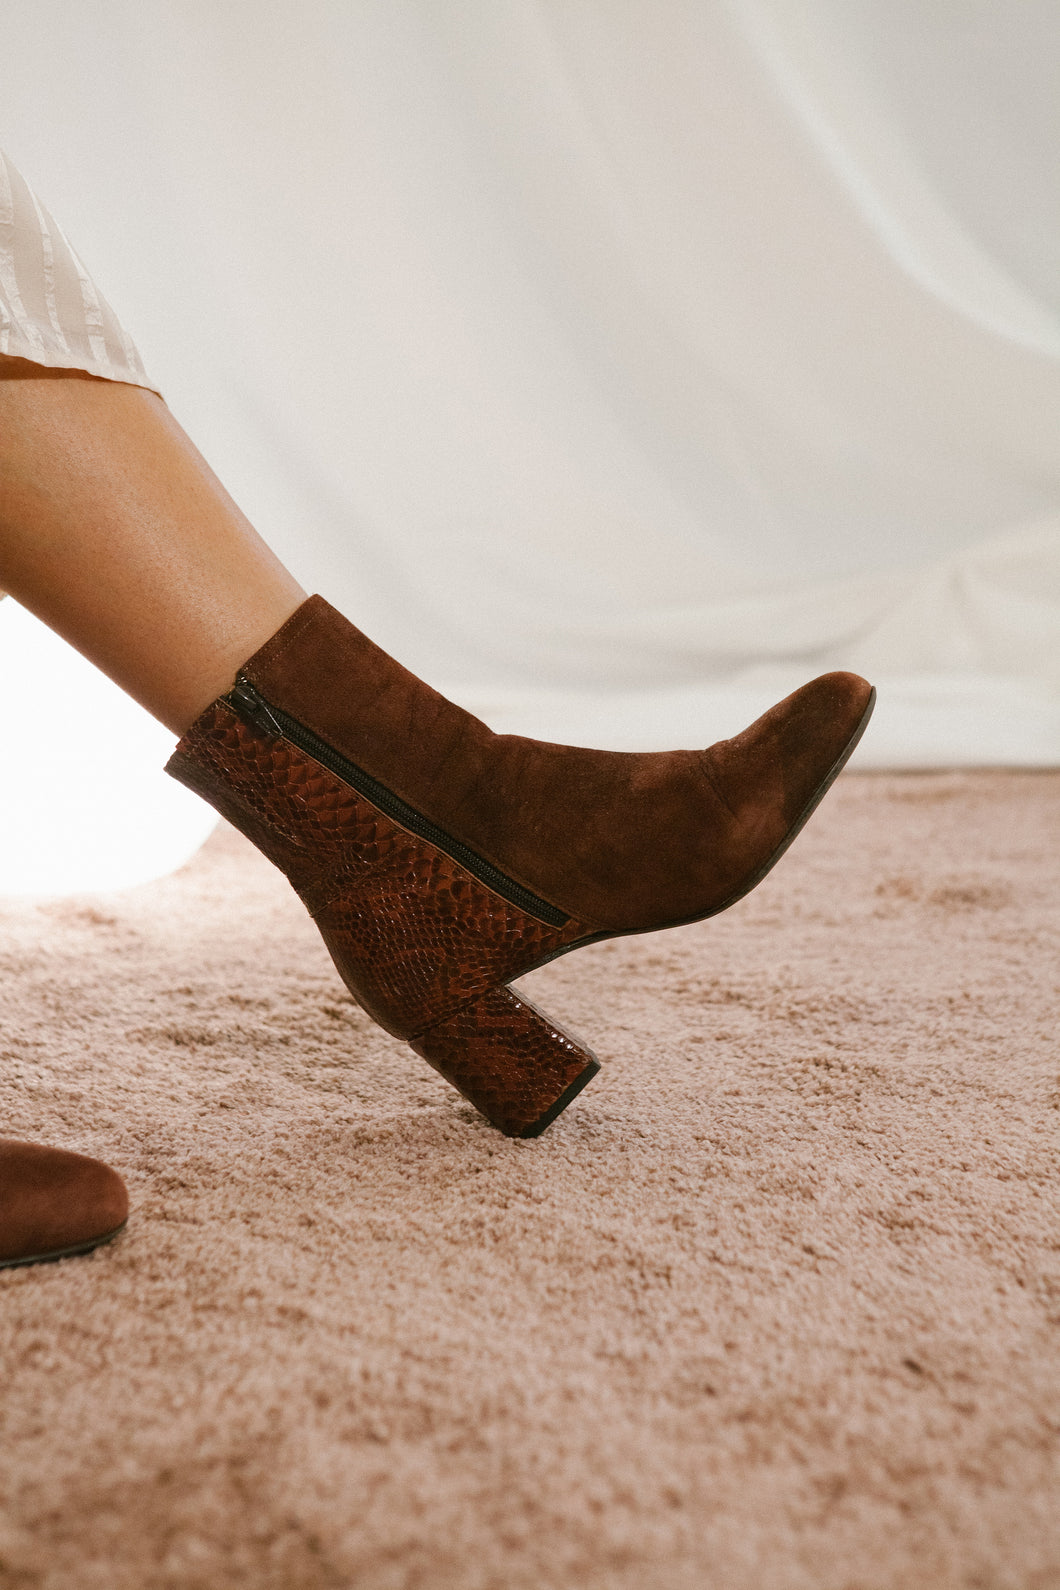 Jean side zip ankle boot - Brown suede and printed snake.